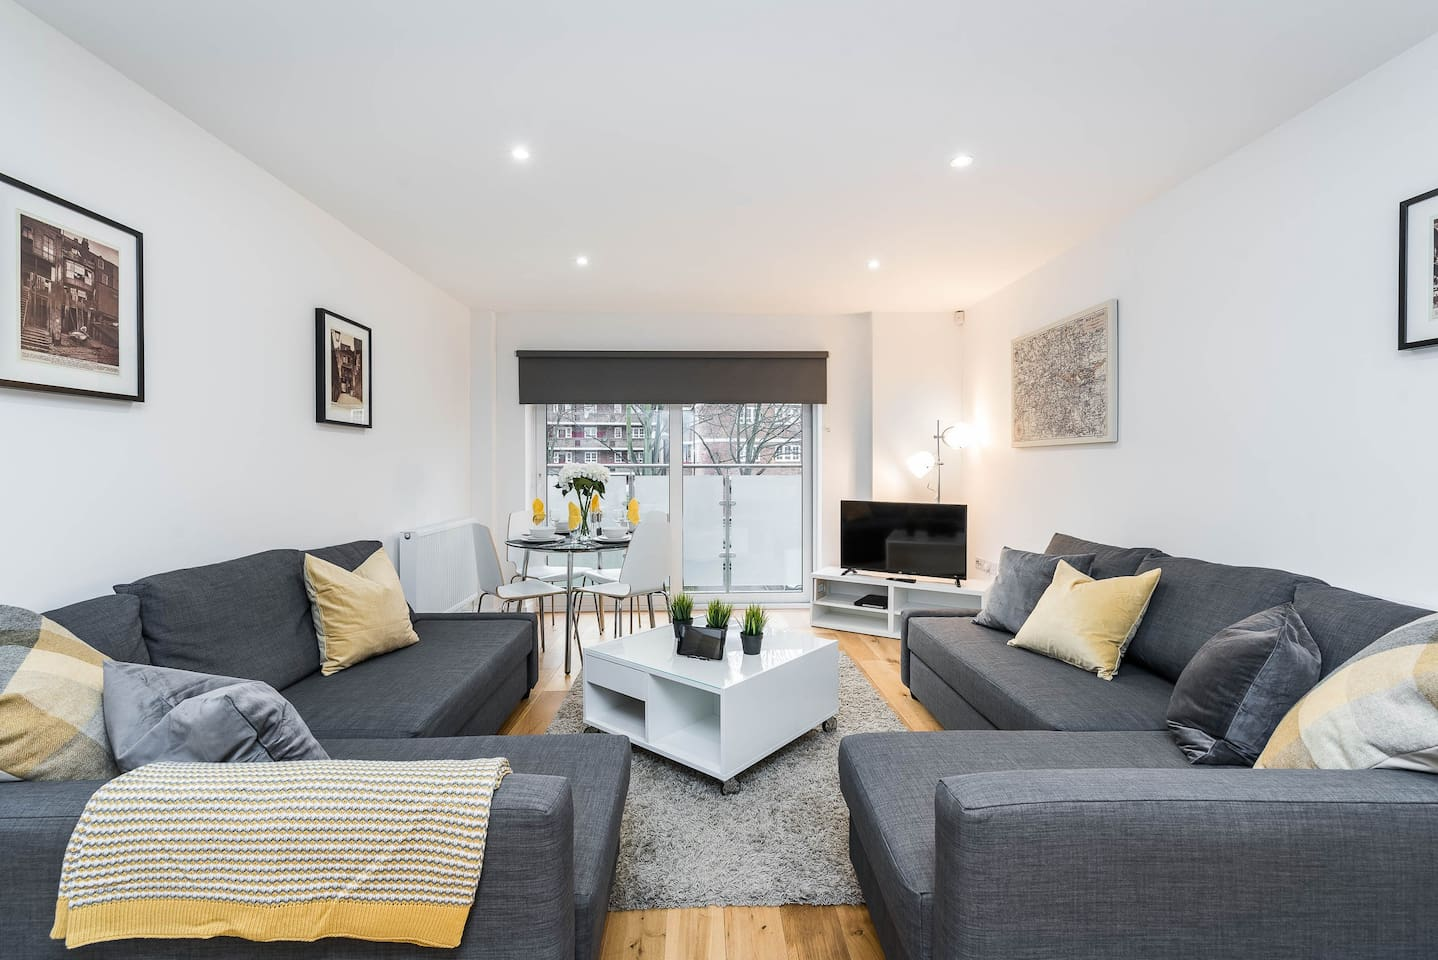 2 vibrant vauxhall apts zone 1 london baby apartments for rent